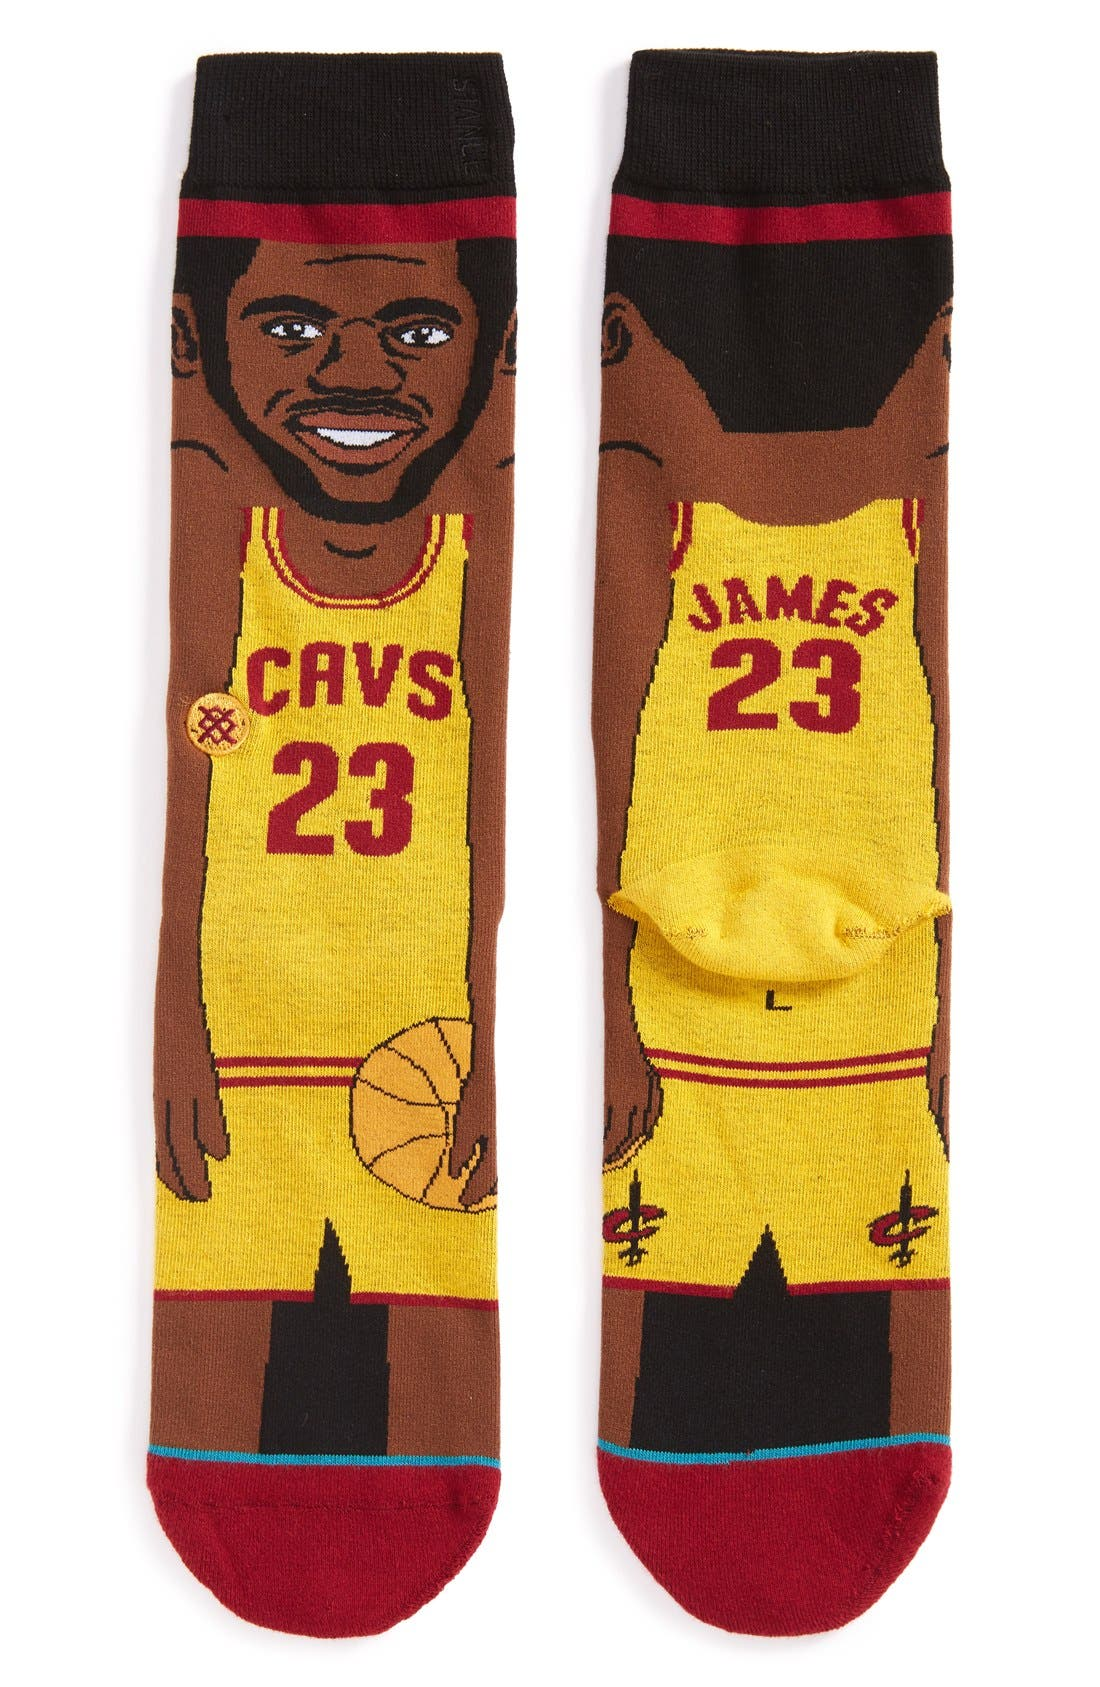 Alternate Image 1 Selected - Stance 'NBA Legends - LeBron James' Crew Socks